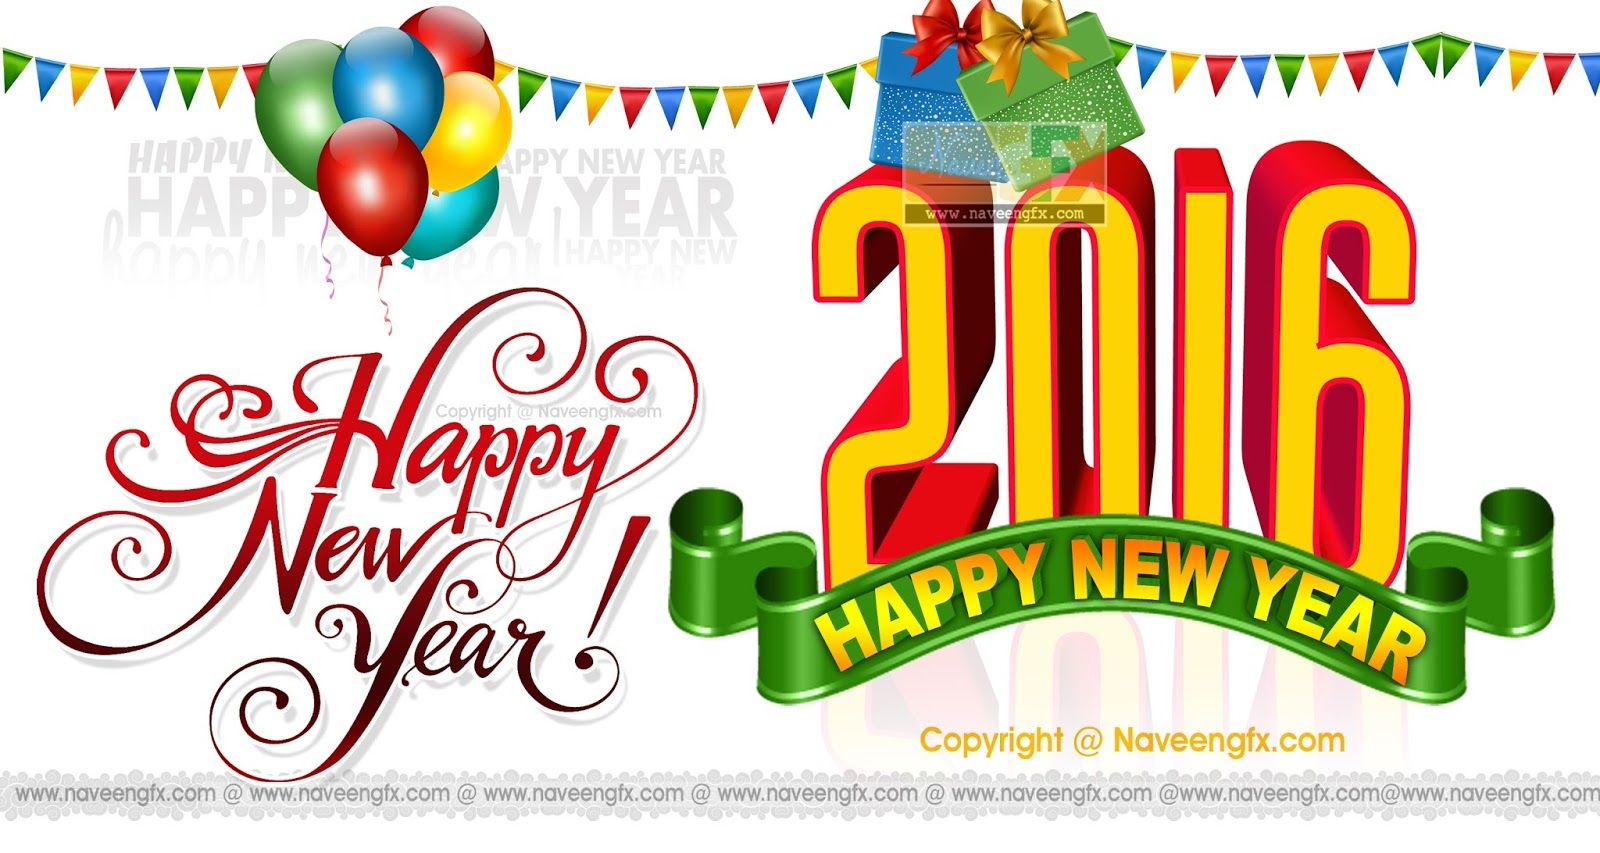 Quotes New Year 2016: Happy New Year Quotes 2016, Happy New Year 3d Quotes And